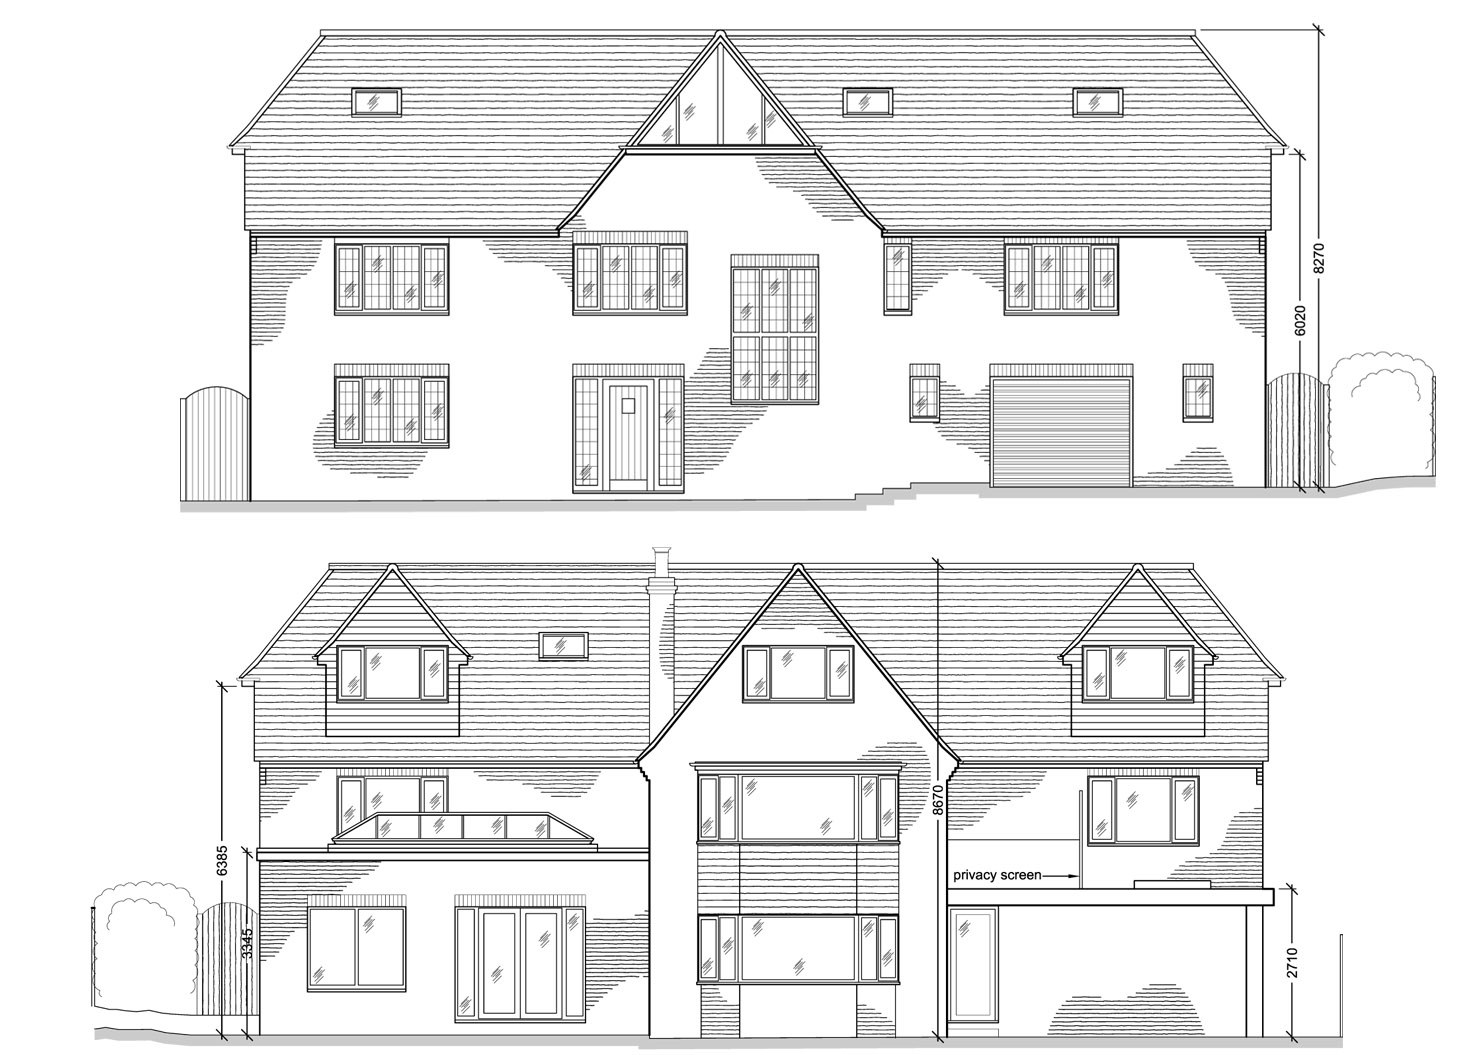 Extension Design By CPA Design Proposed Front and Rear Elevation